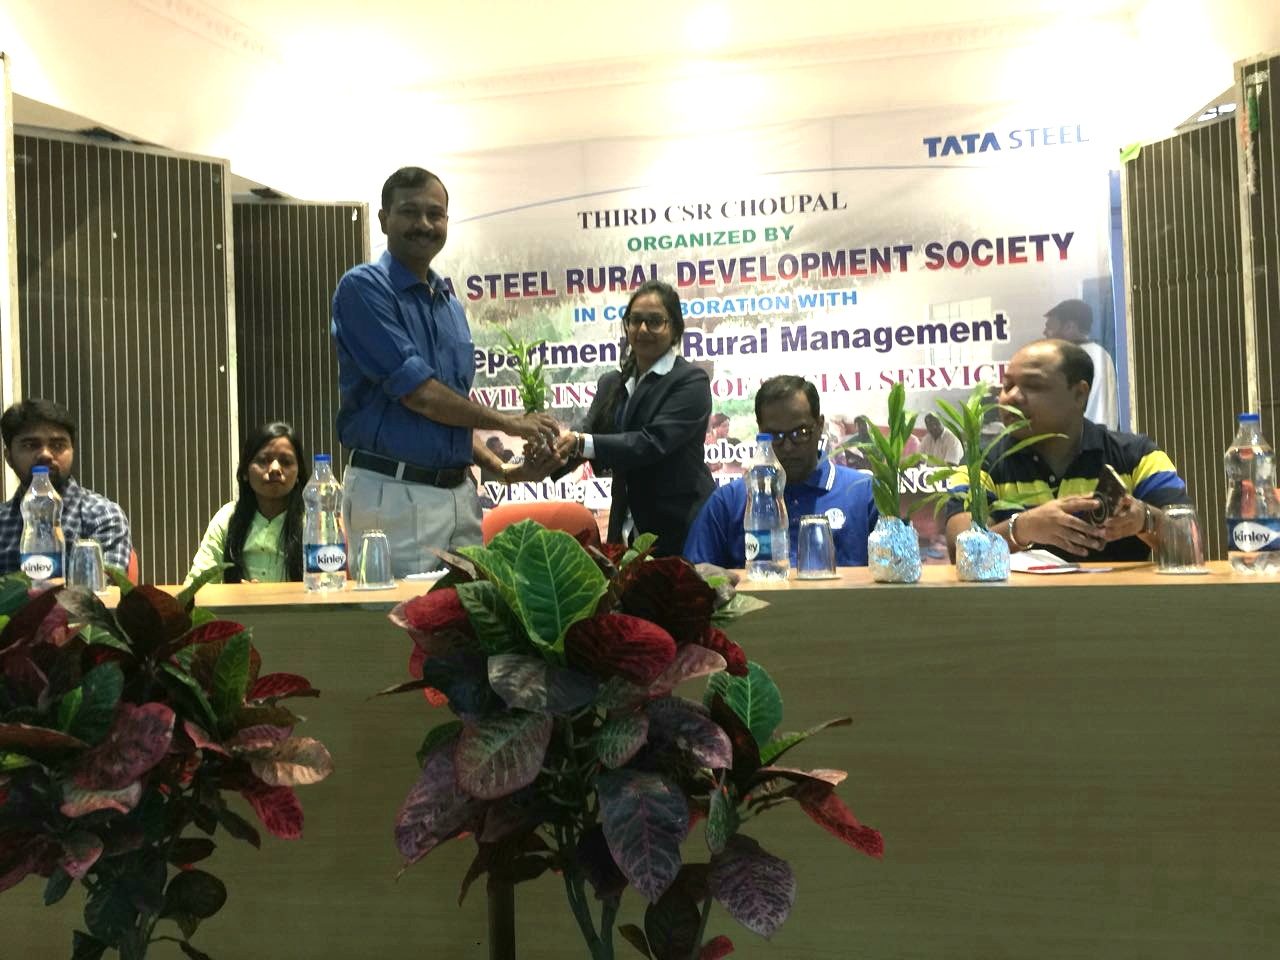 The 3rd CSR Chaupal by the TSRDS (Tata Steel Rural Development Society)